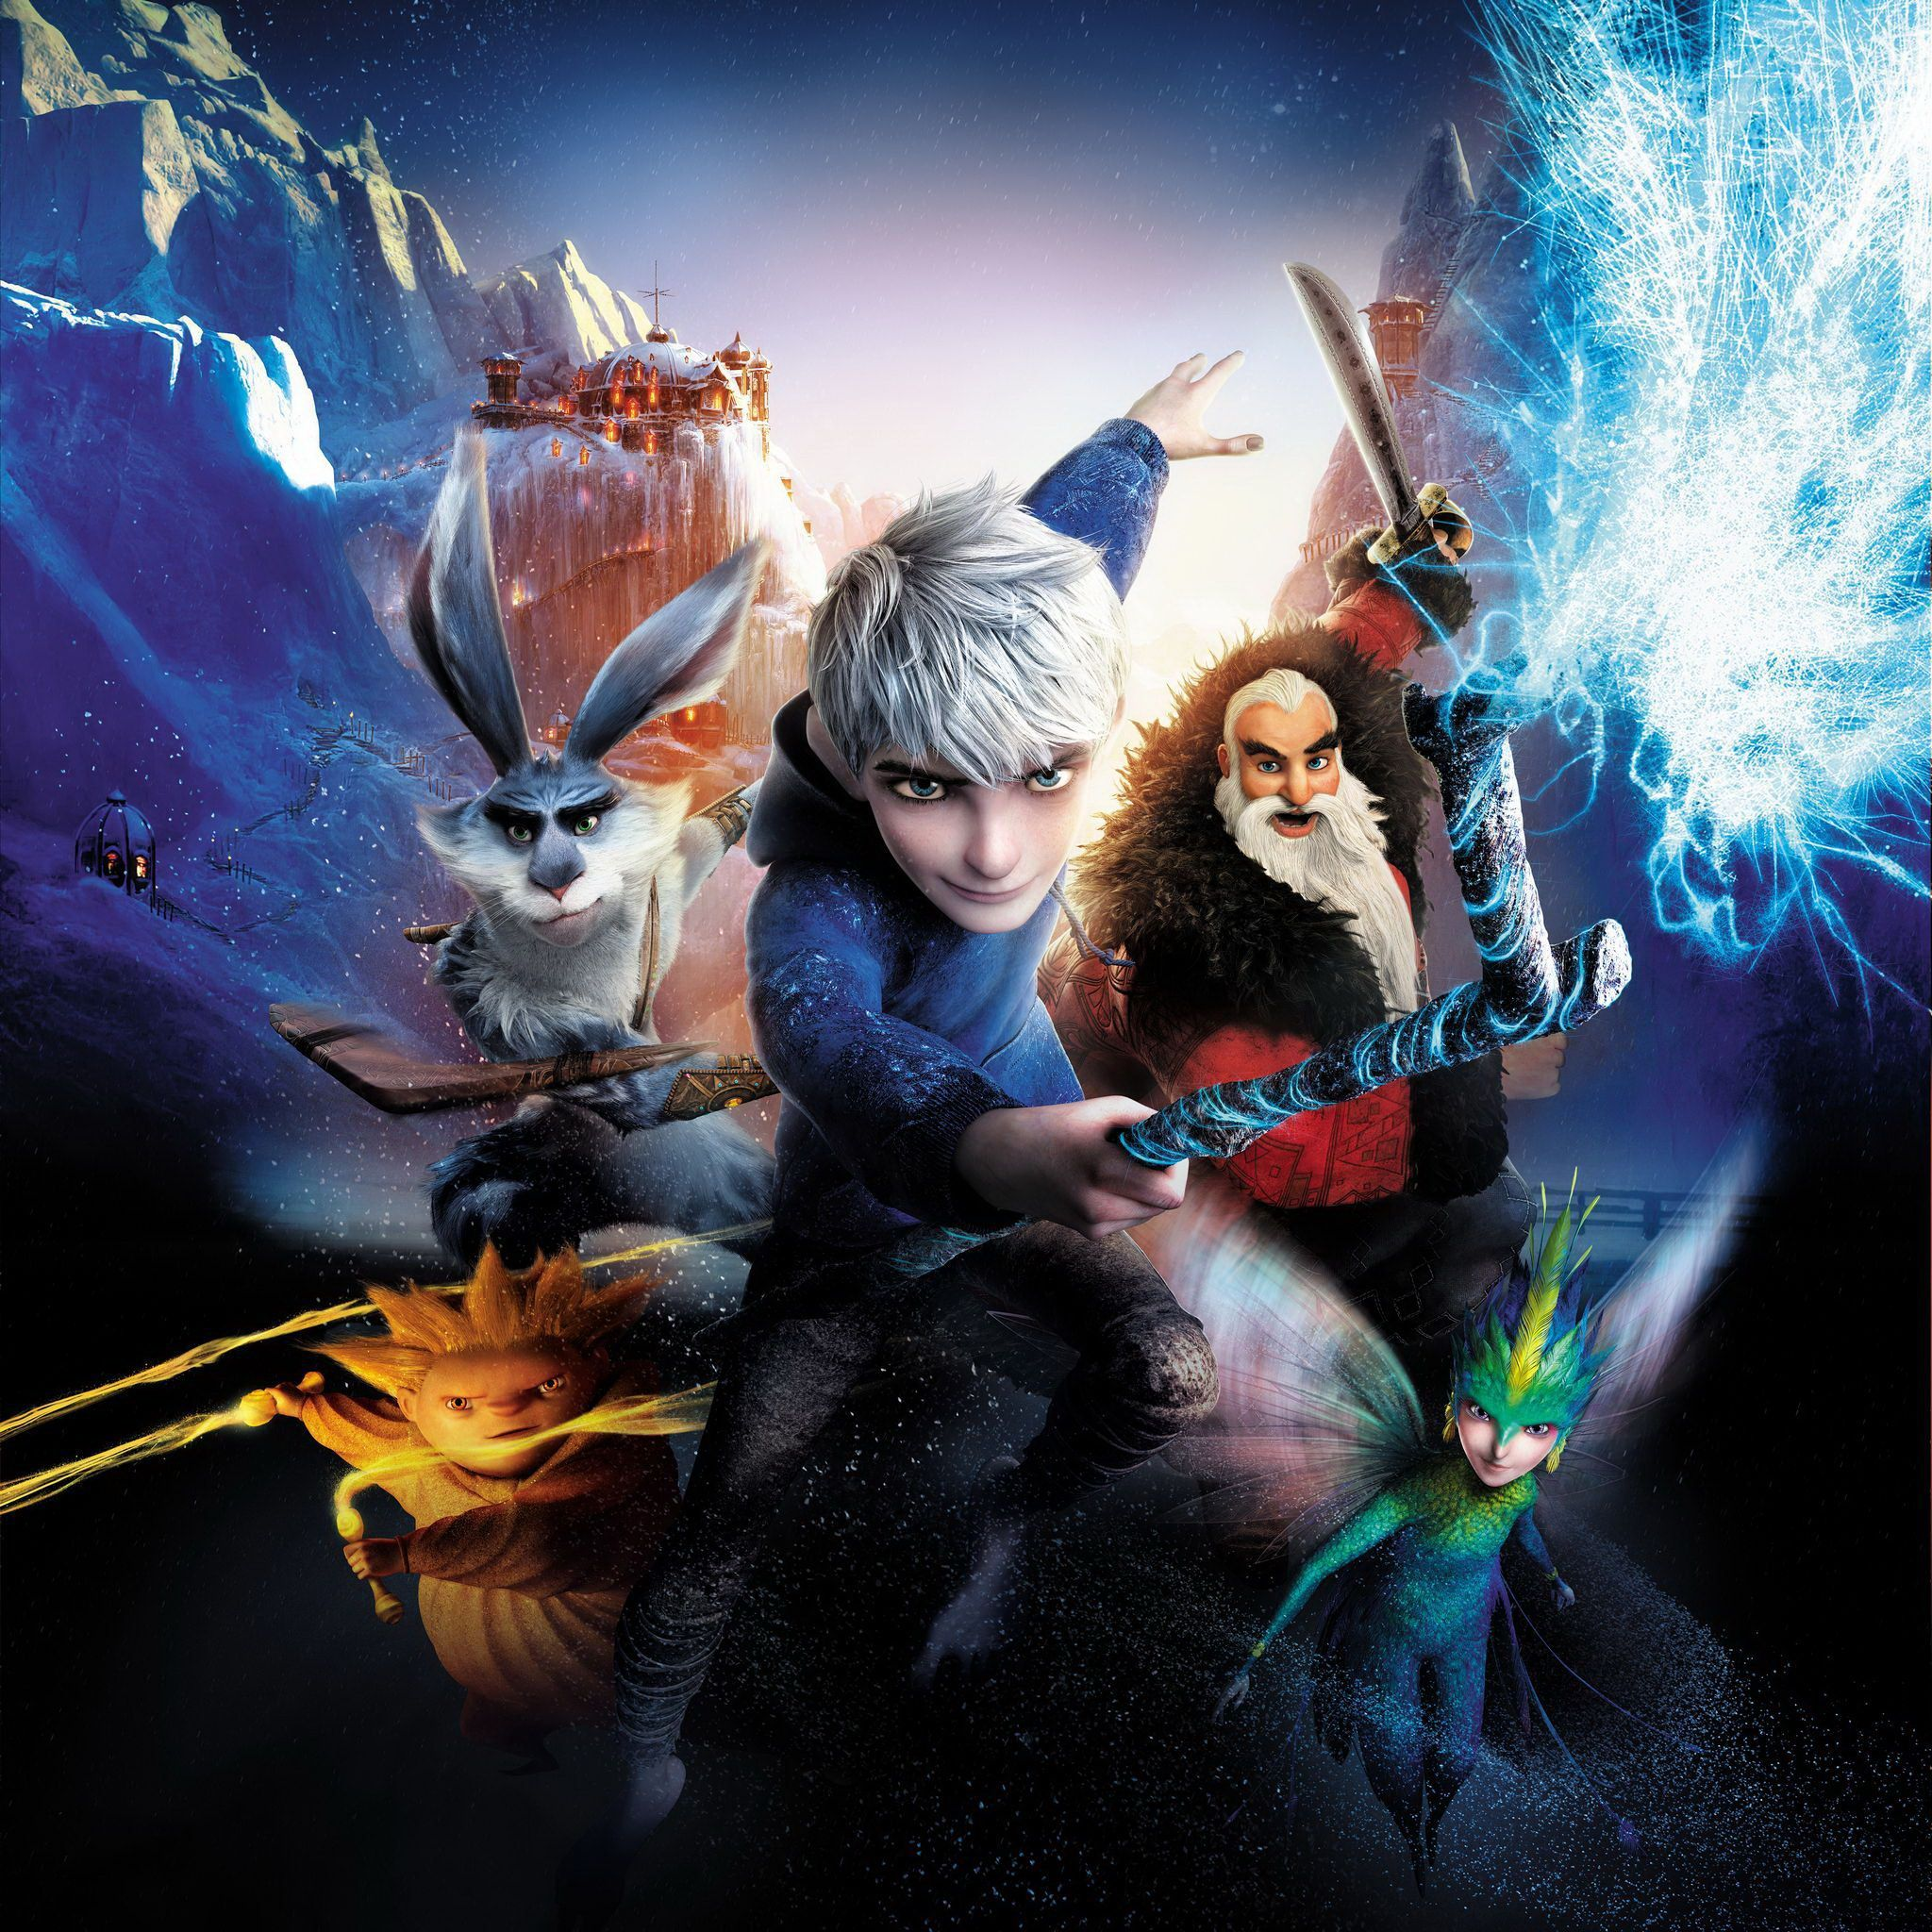 Jack Frost Rise Of The Guardians Wallpaper Google Search The